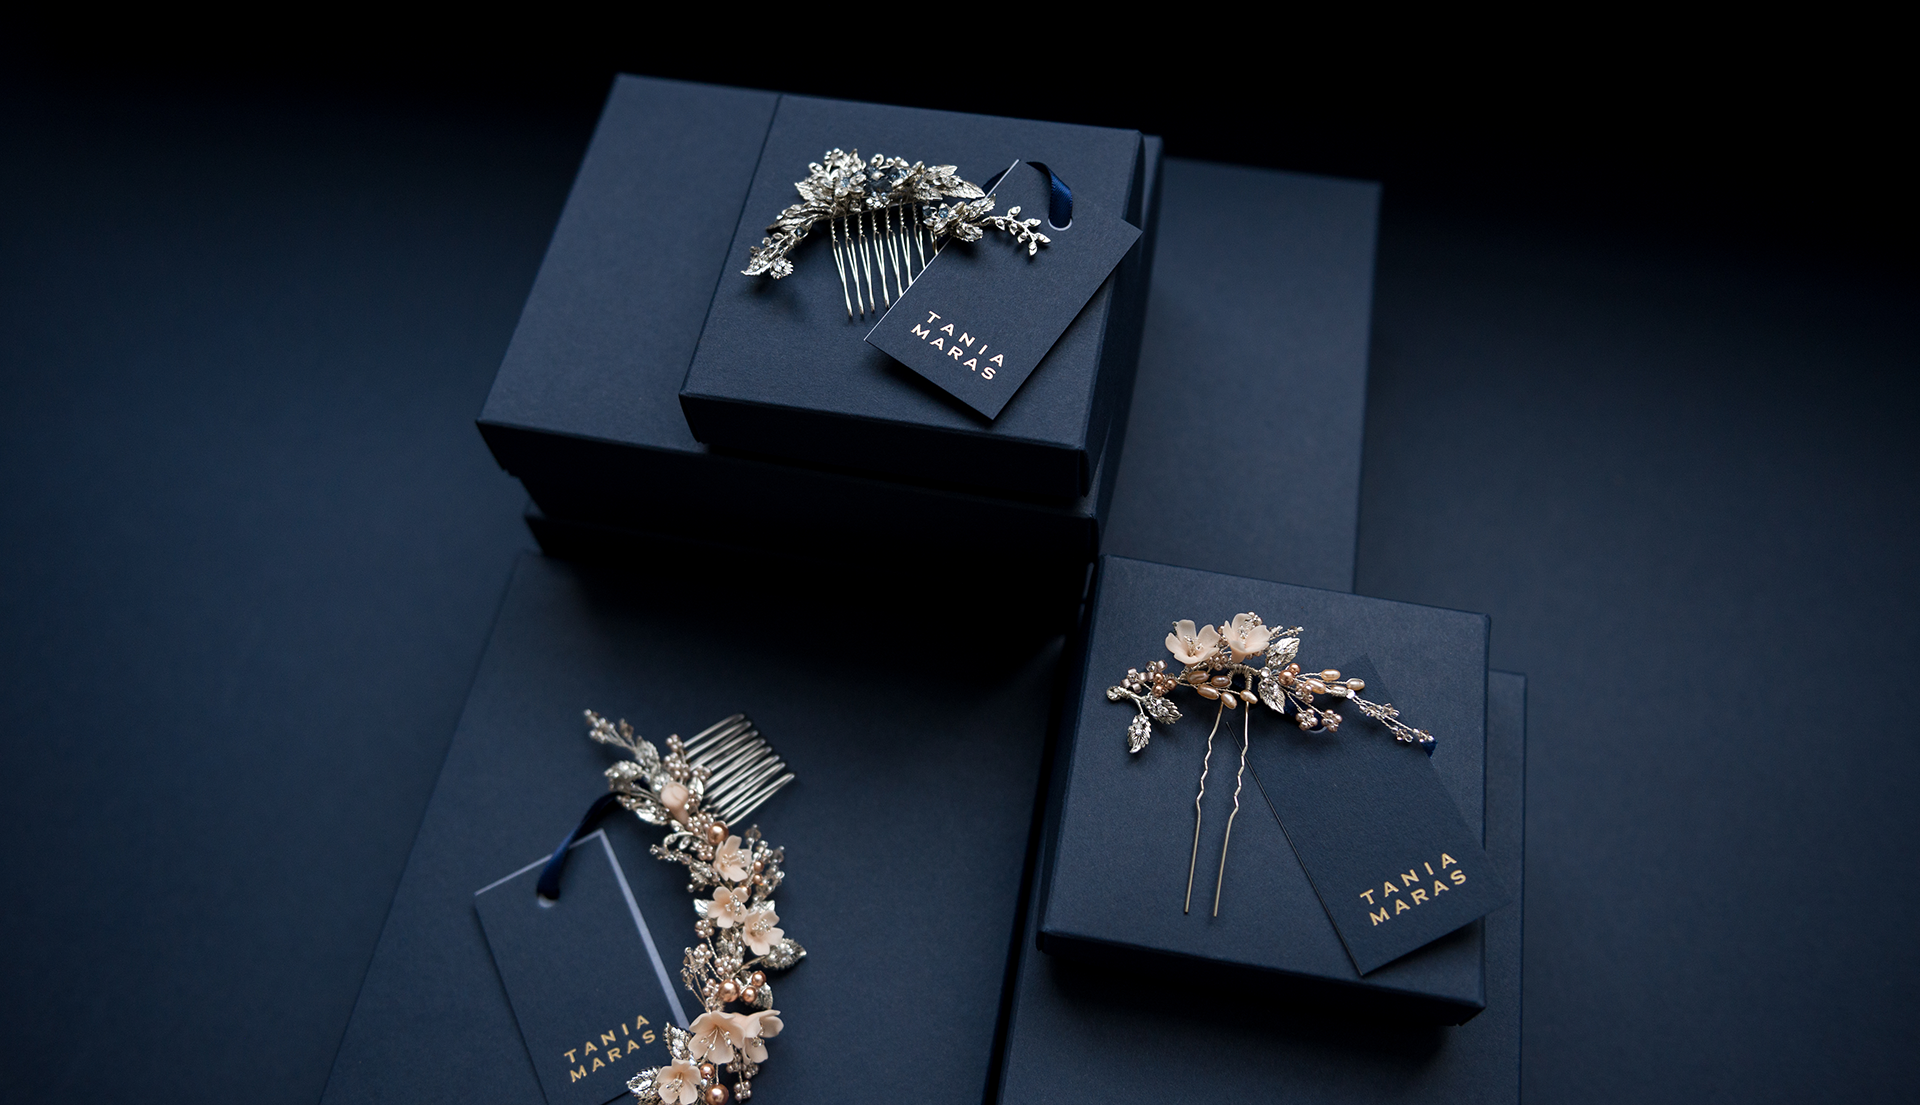 Bridal hair accessories with navy blue packaging and gold foils.